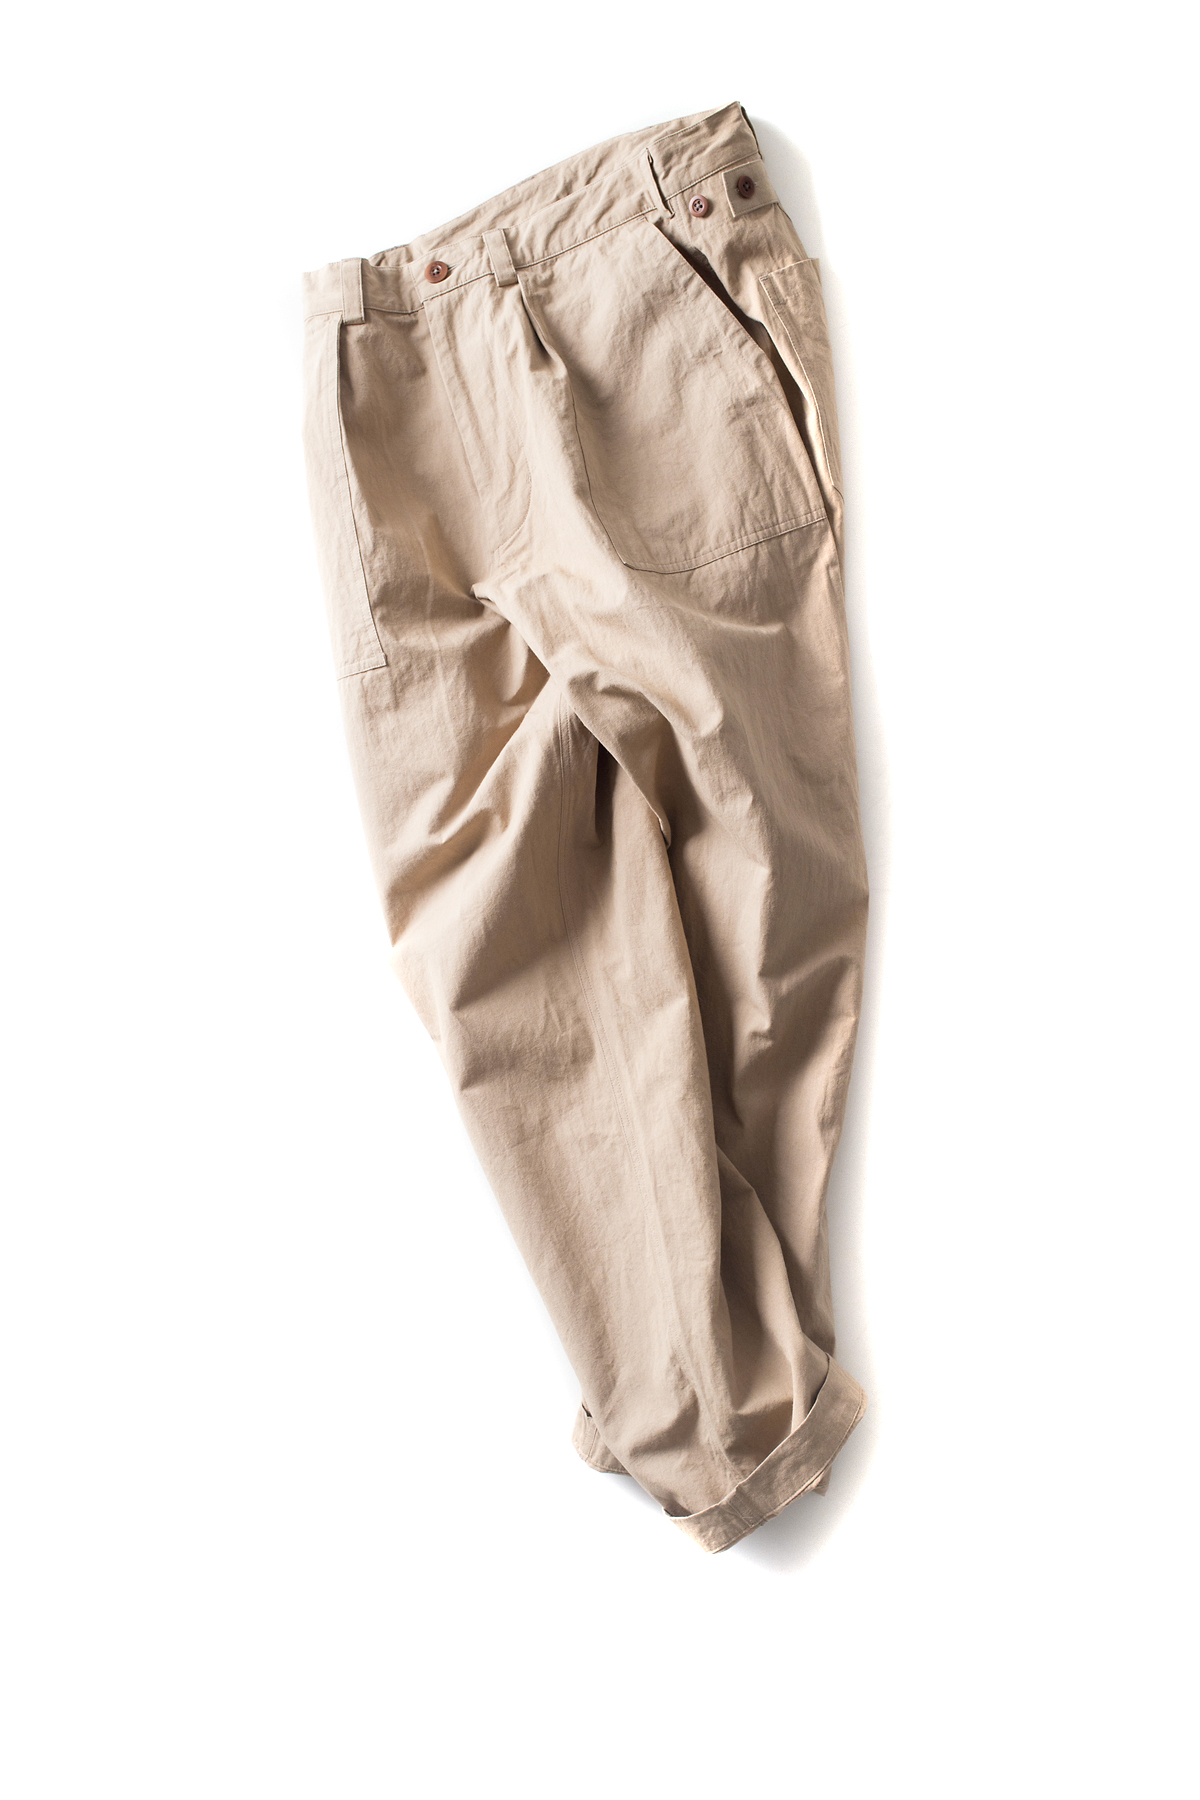 maillot : Hemp Over Pants (Beige)